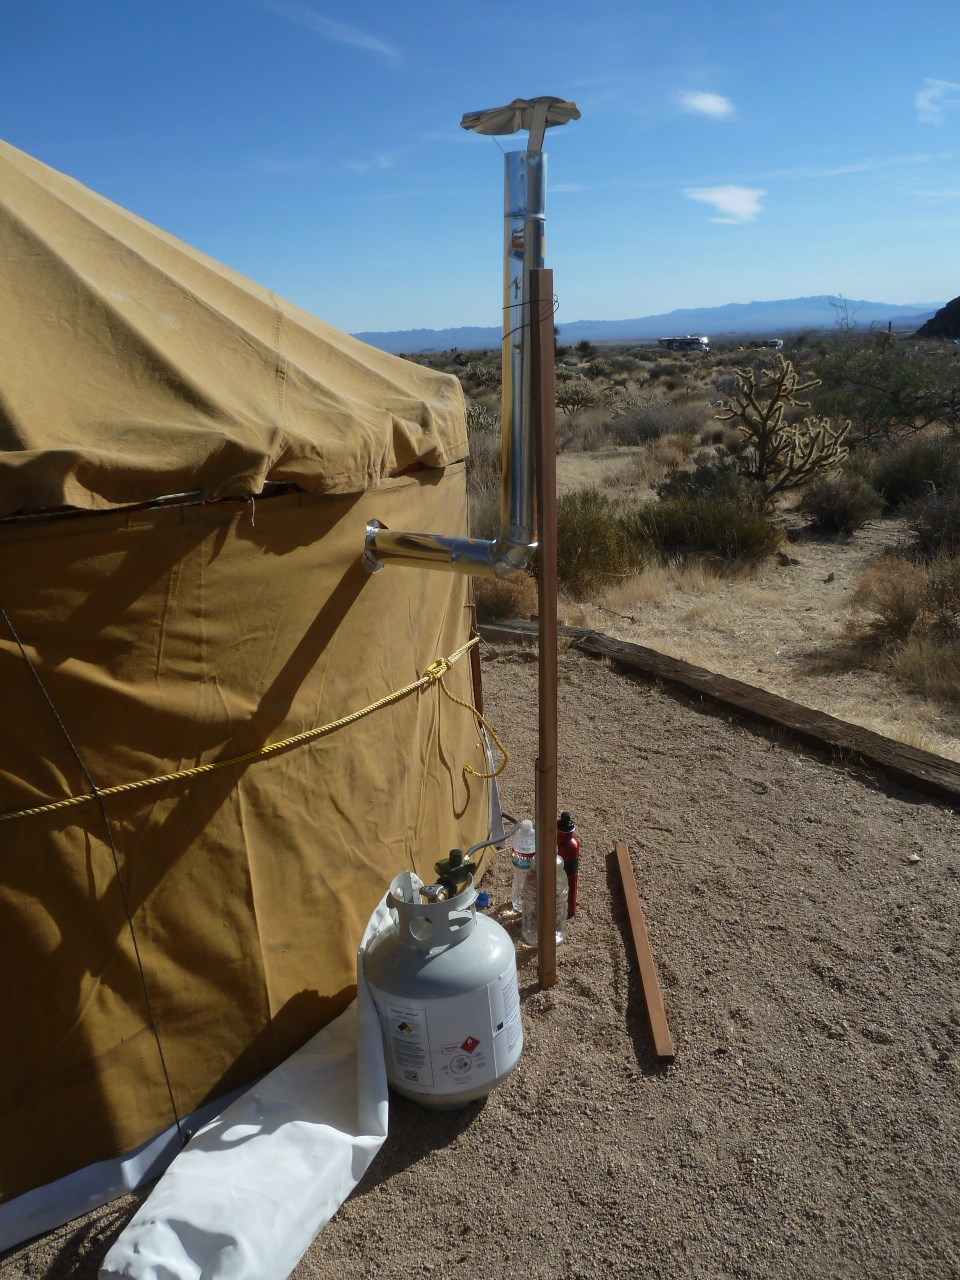 View of the stove pipe outside the tent. The pipe is supported by a length of wood. The propane tank stays outside. & Nomadic Life: A Propane Heater for the Yurt